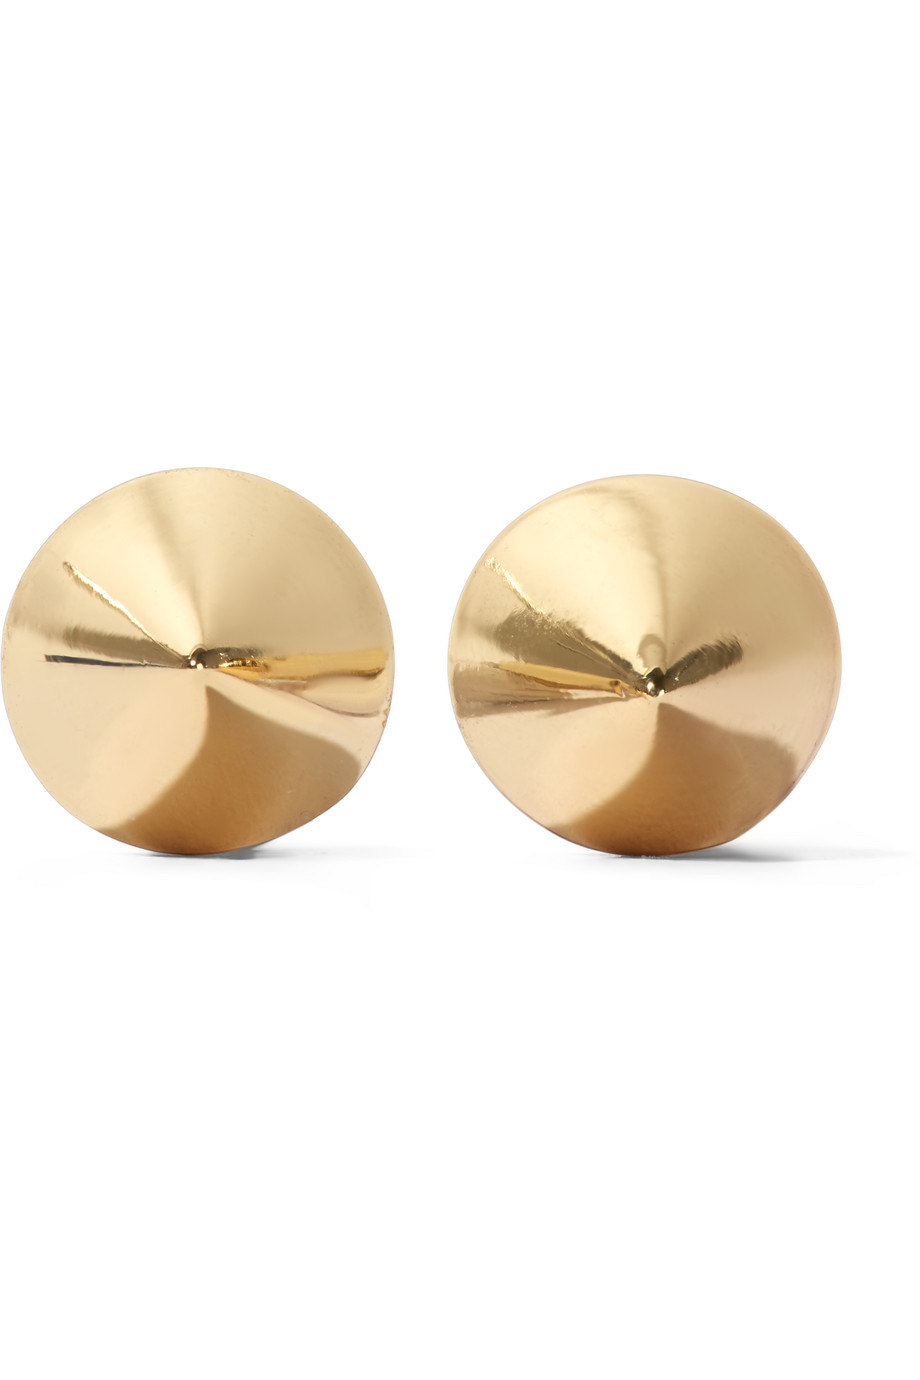 Eddie Borgo Gold-Plated Cone Earrings, Women's